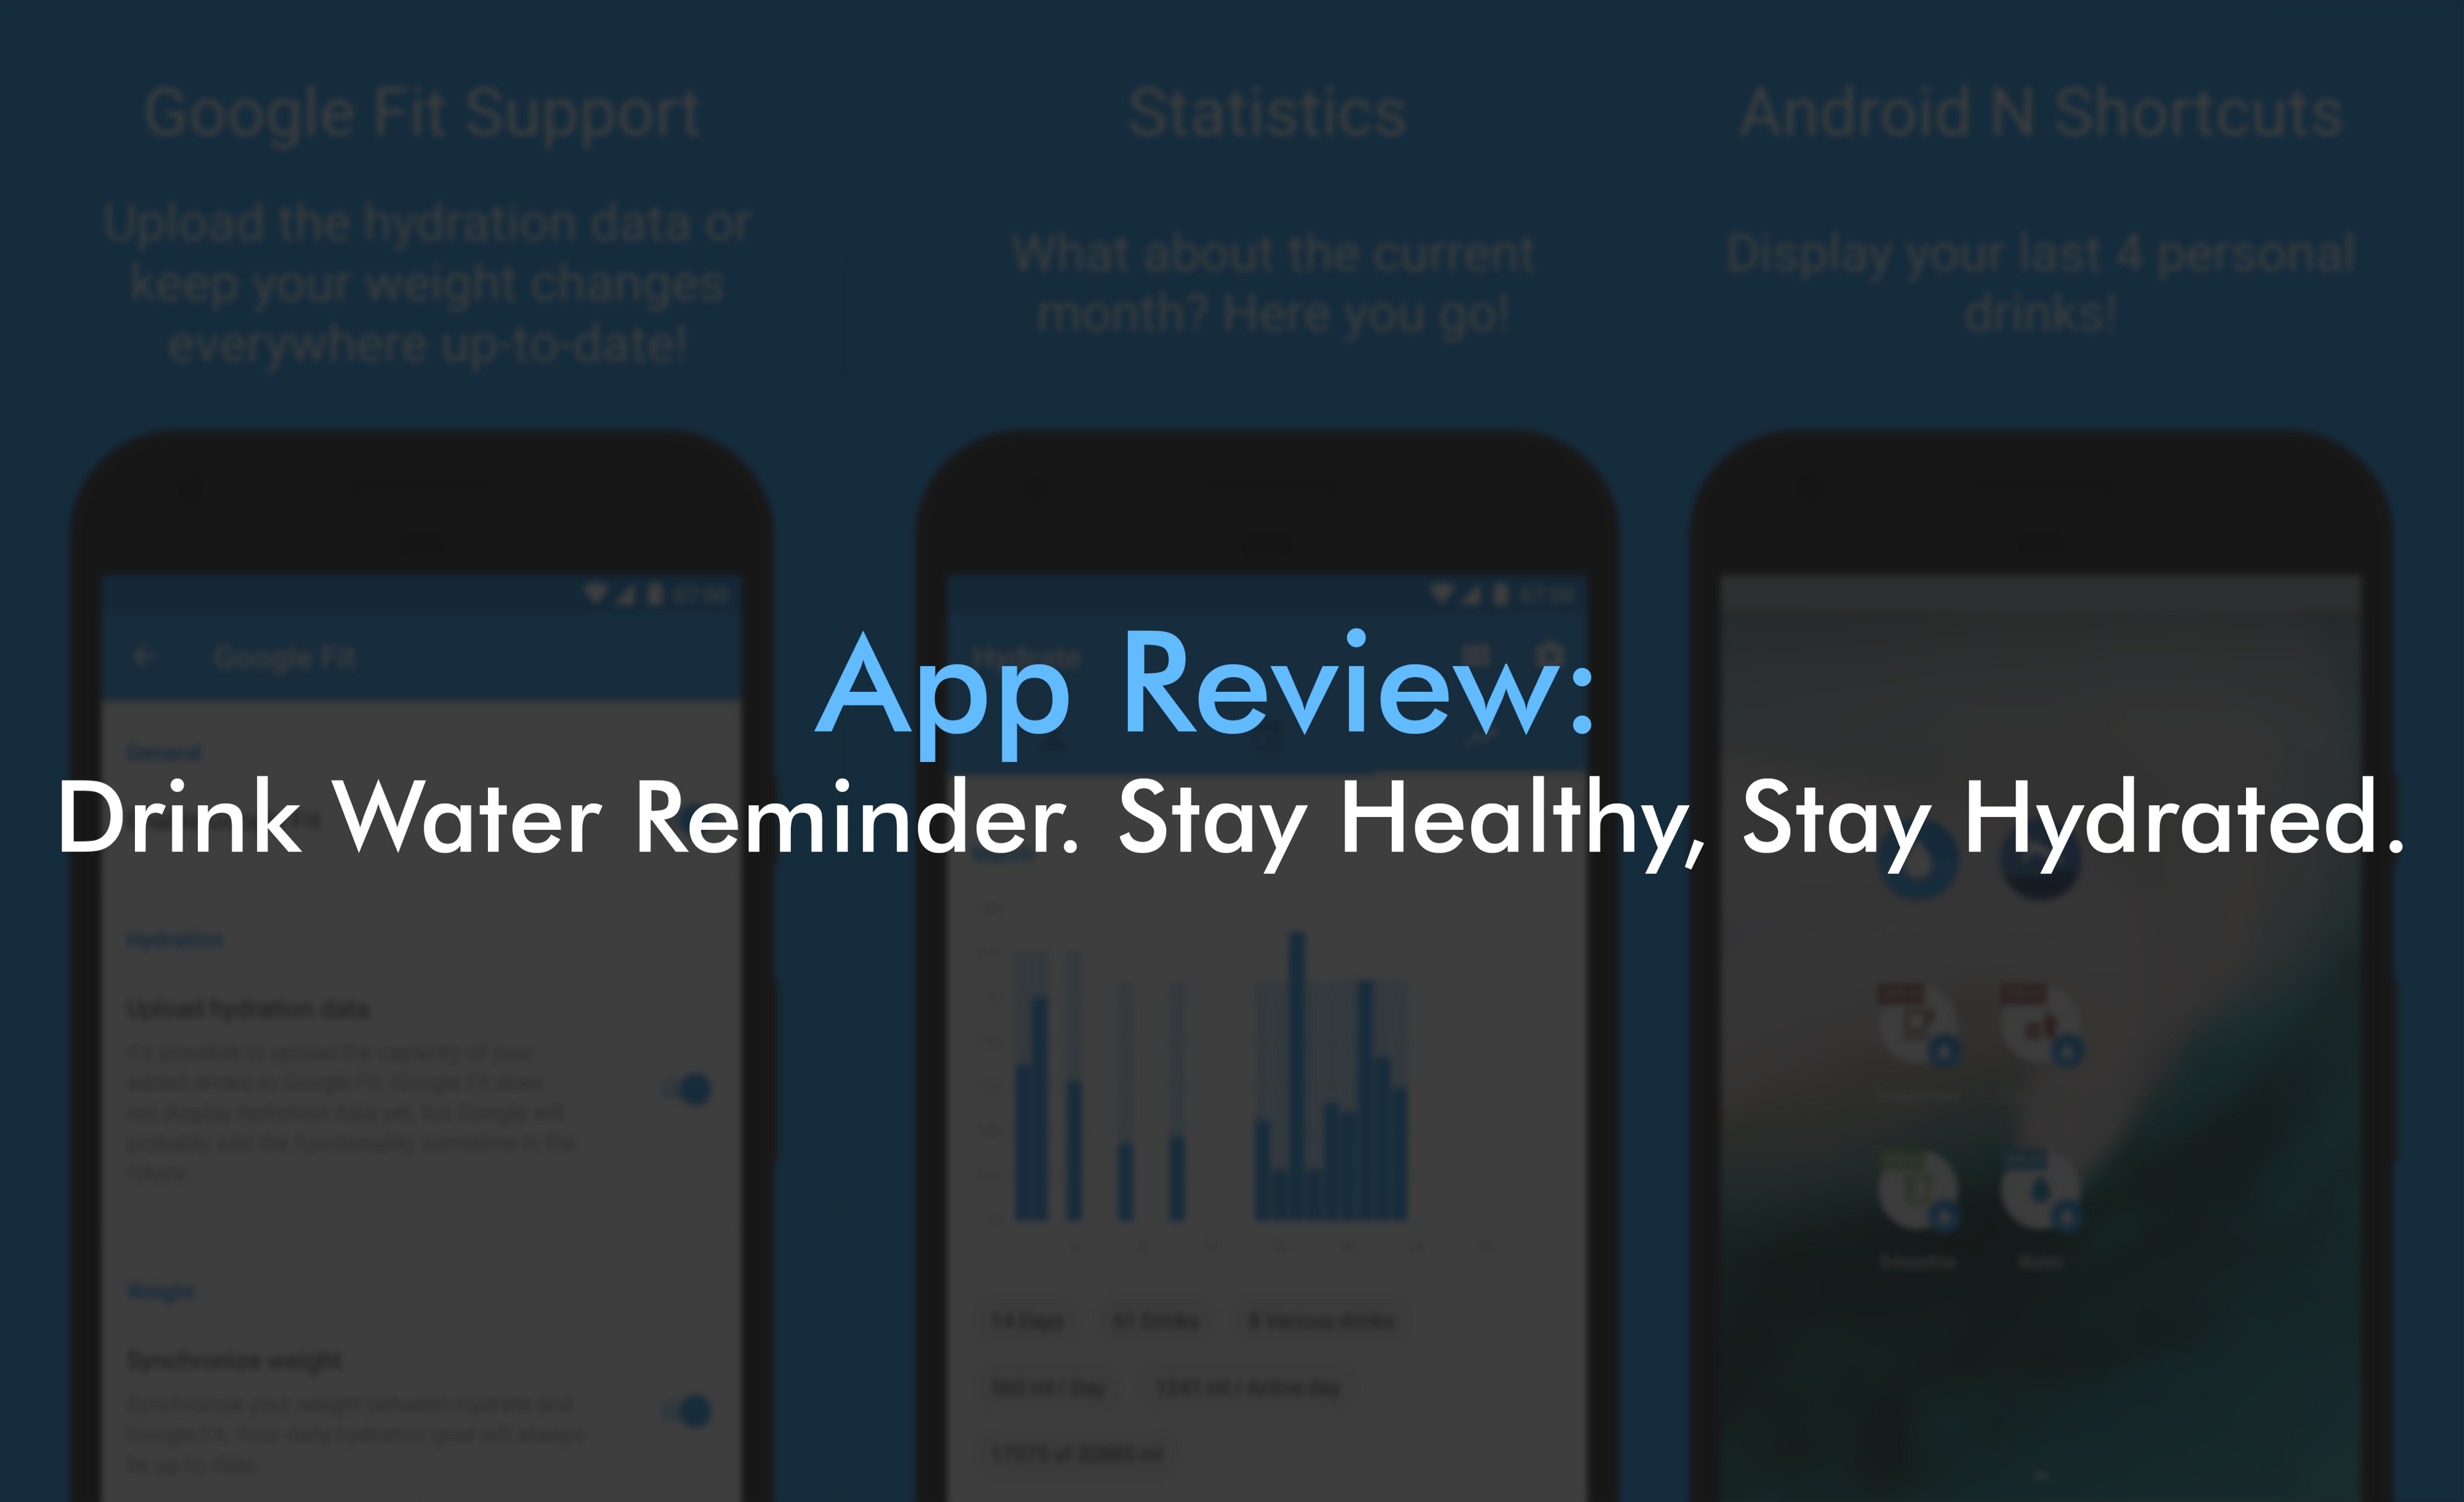 App Review: Drink Water Reminder  Stay Healthy, Stay Hydrated